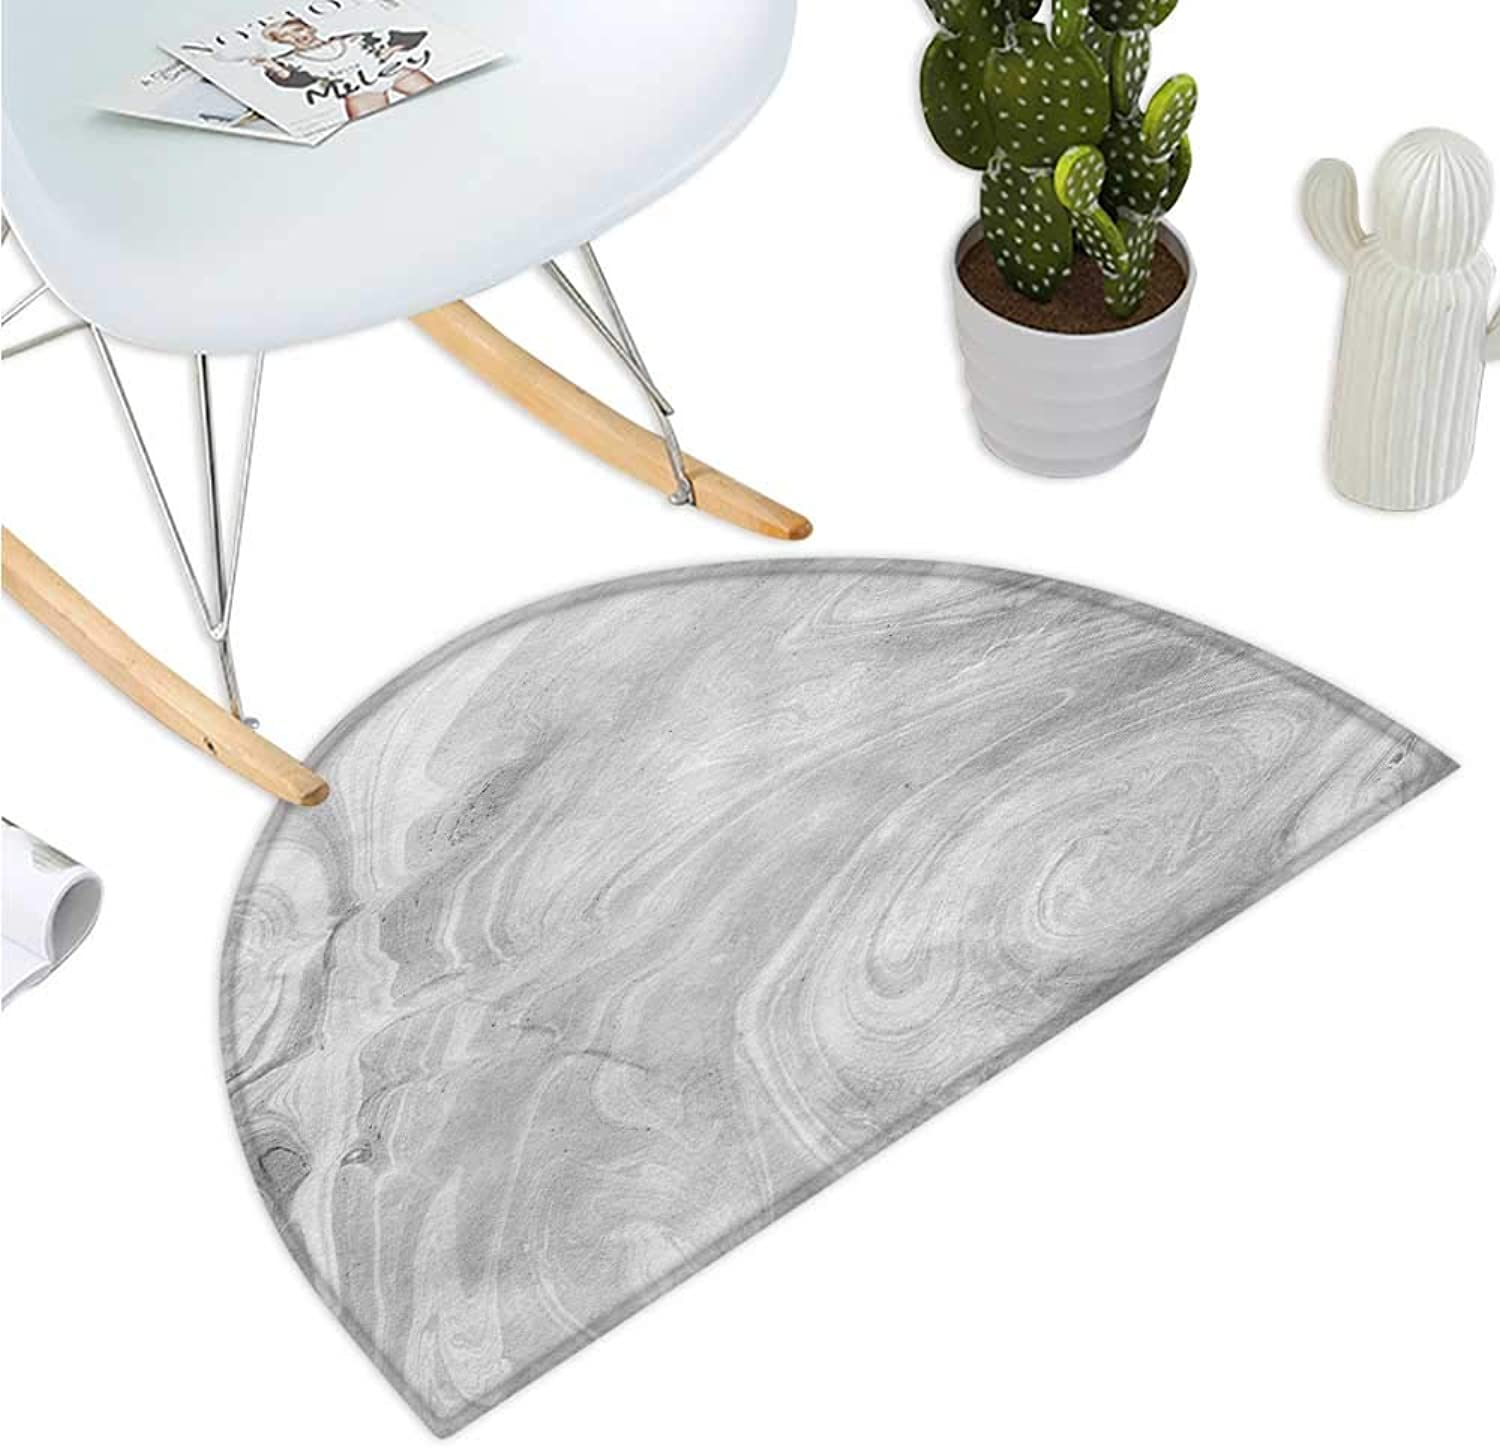 Marble Half Round Door mats Traditional Monochromatic Japanese Style Paperlike Pattern Natural Retro Approach Bathroom Mat H 43.3  xD 64.9  Pale Grey